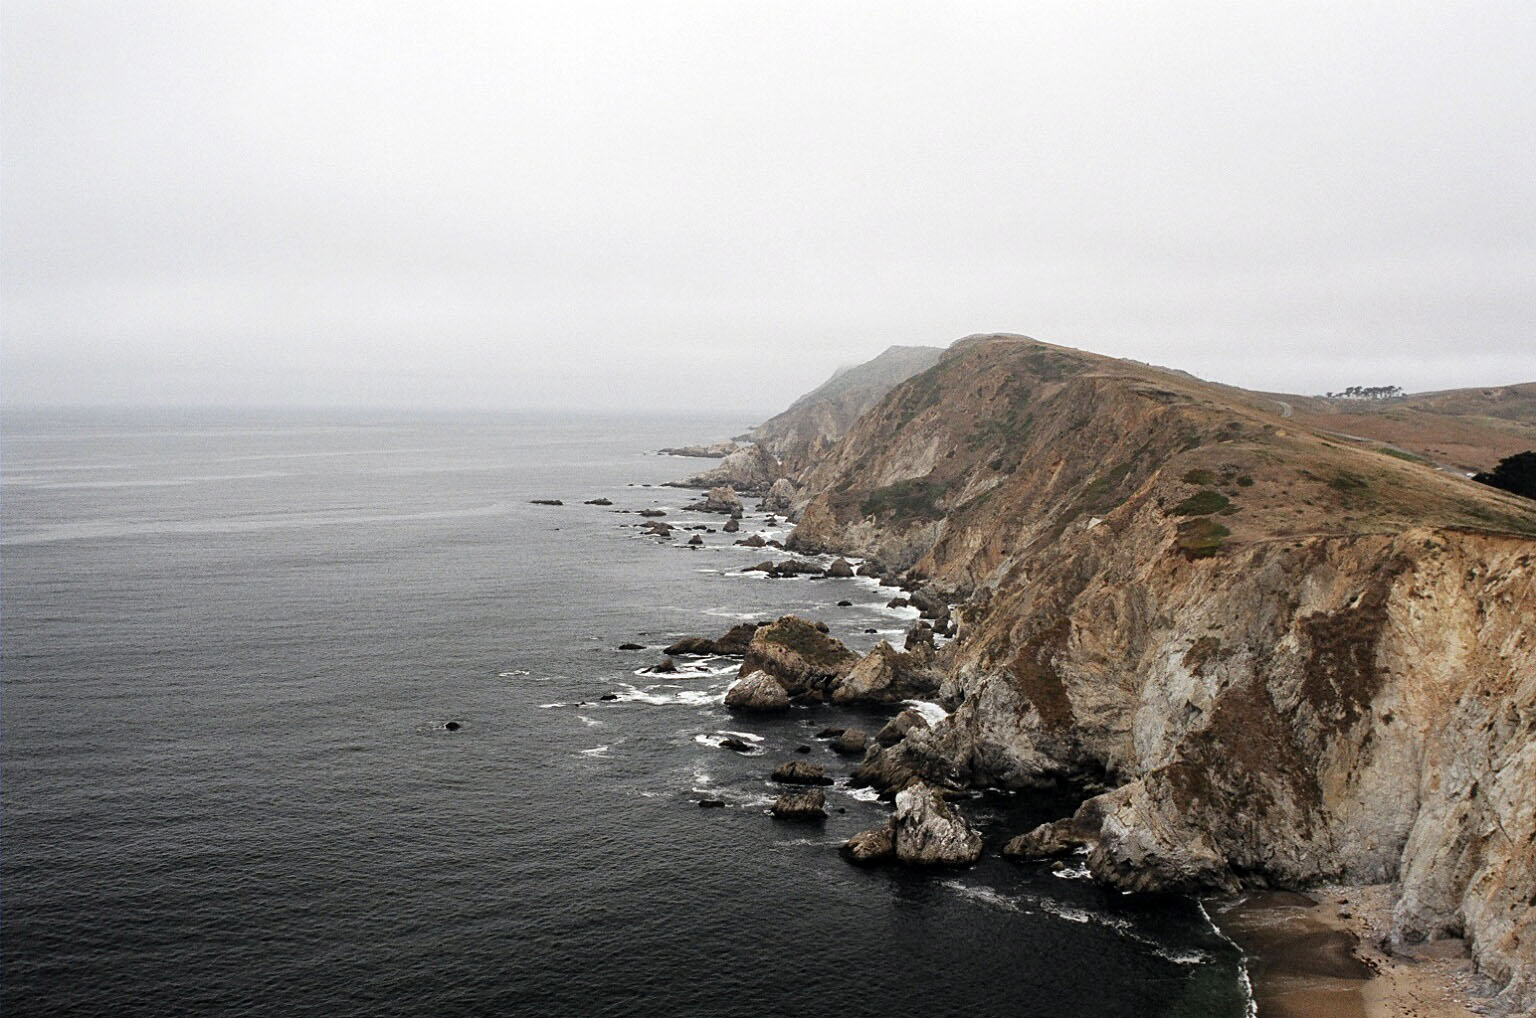 Day trip to Point Reyes, California